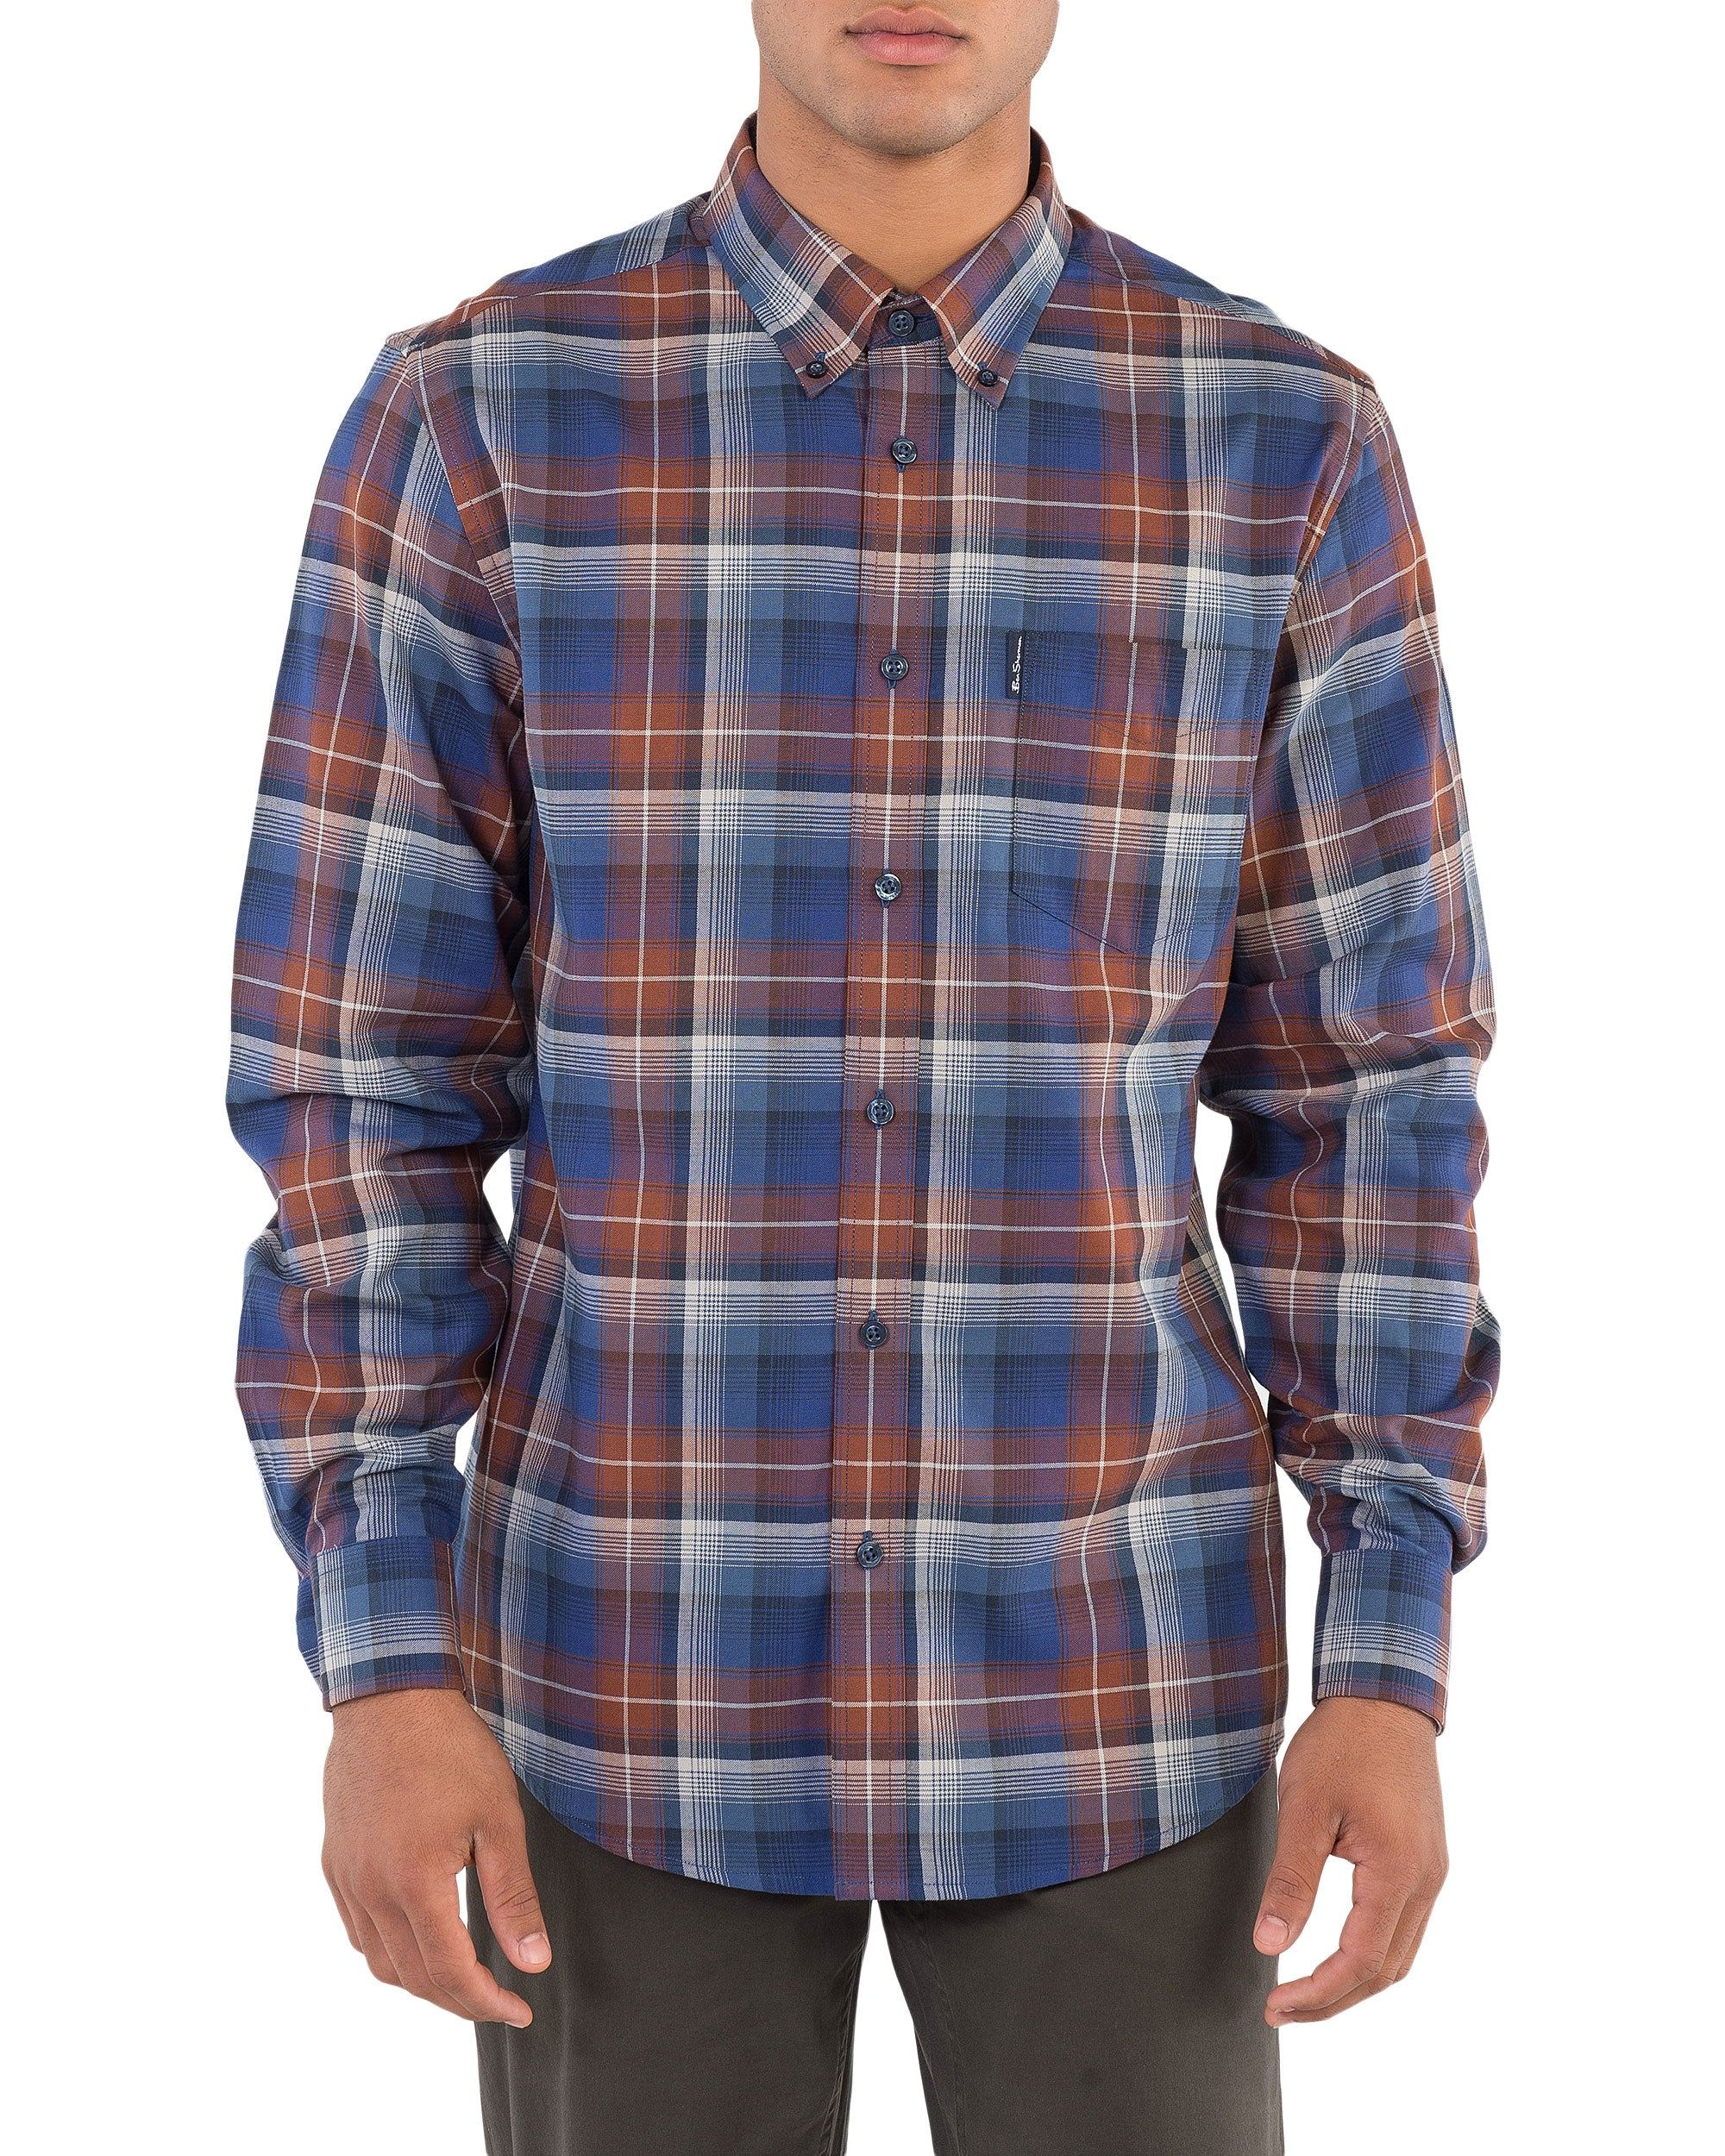 Long-Sleeve Ombre Check Shirt - Coffee